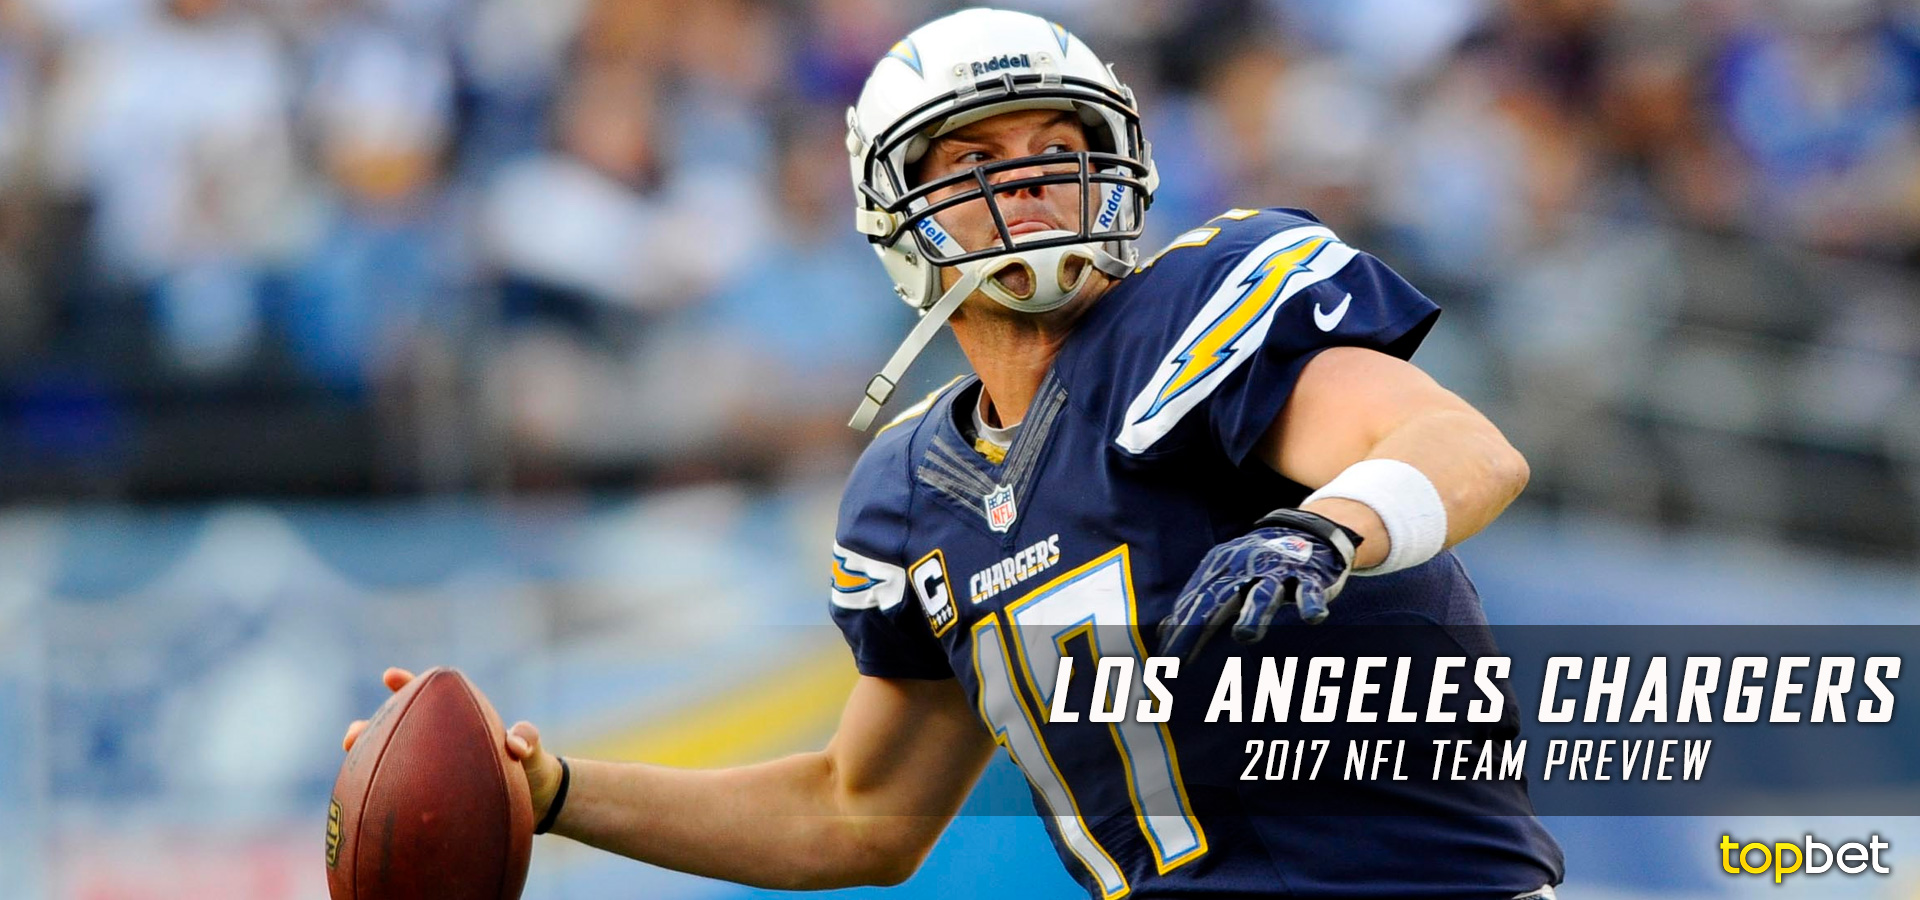 Los Angeles Chargers 2017 18 Team Preview Odds